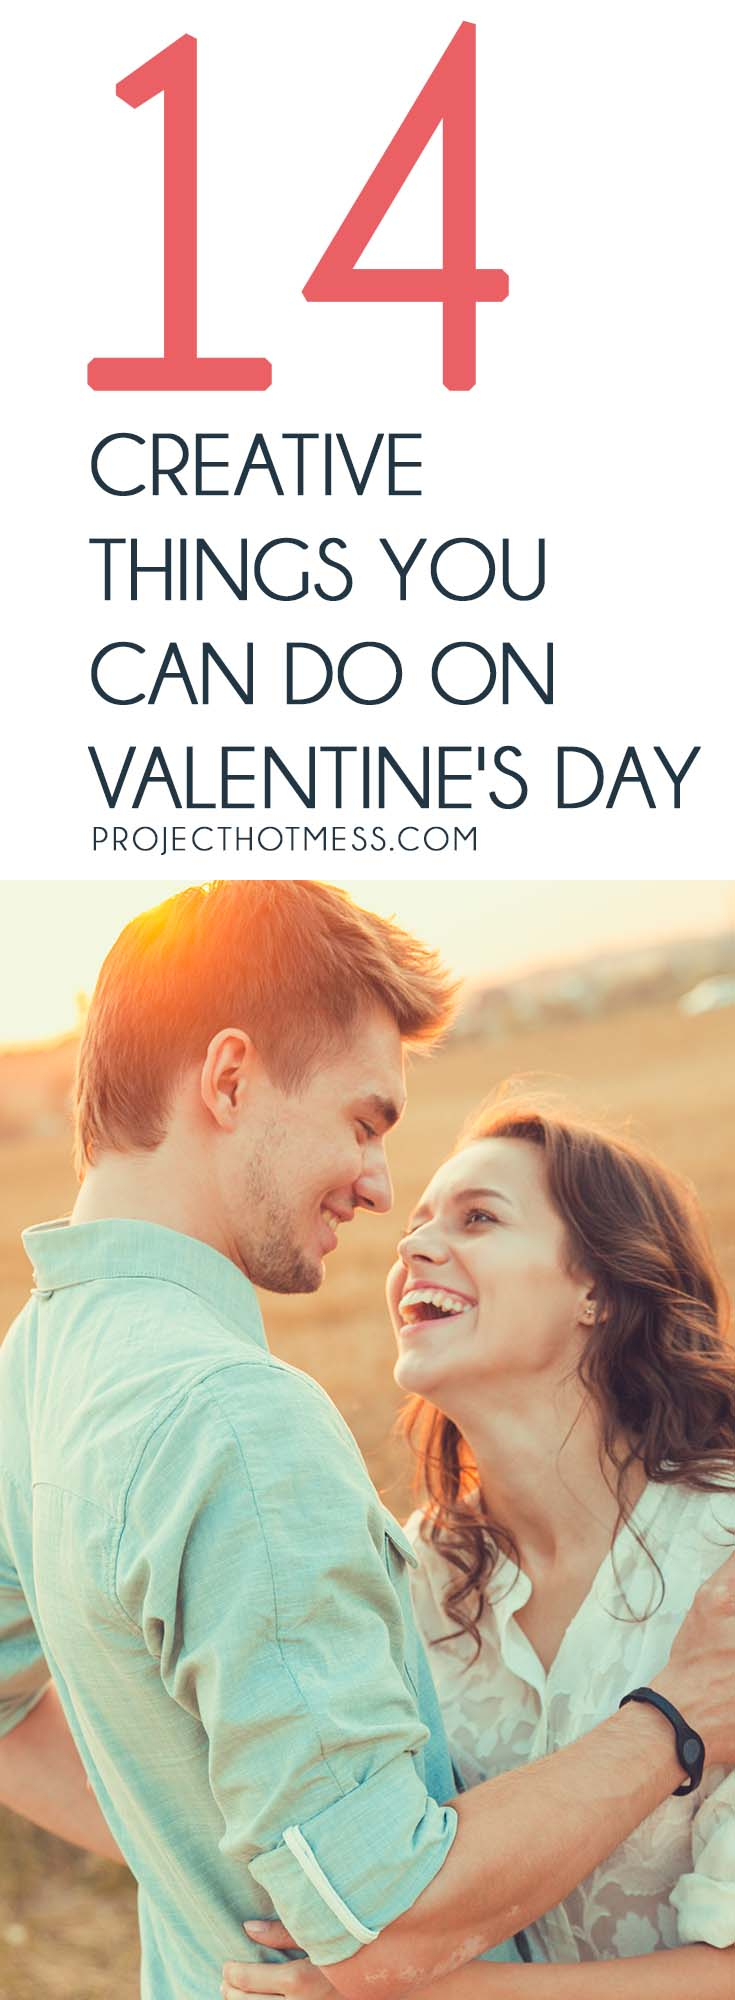 Are you up for another stock standard Valentine's Day with chocolates and flowers? Stop being so predictable and get a little creative! There are so many more fun and exciting ways you can show your love for each other! Here's some inspiration with these creative things you can do on Valentine's Day! #valentinesday #valentinesdayideas #valentinesdaygifts #valentinesdaydate #dateideas #relationships